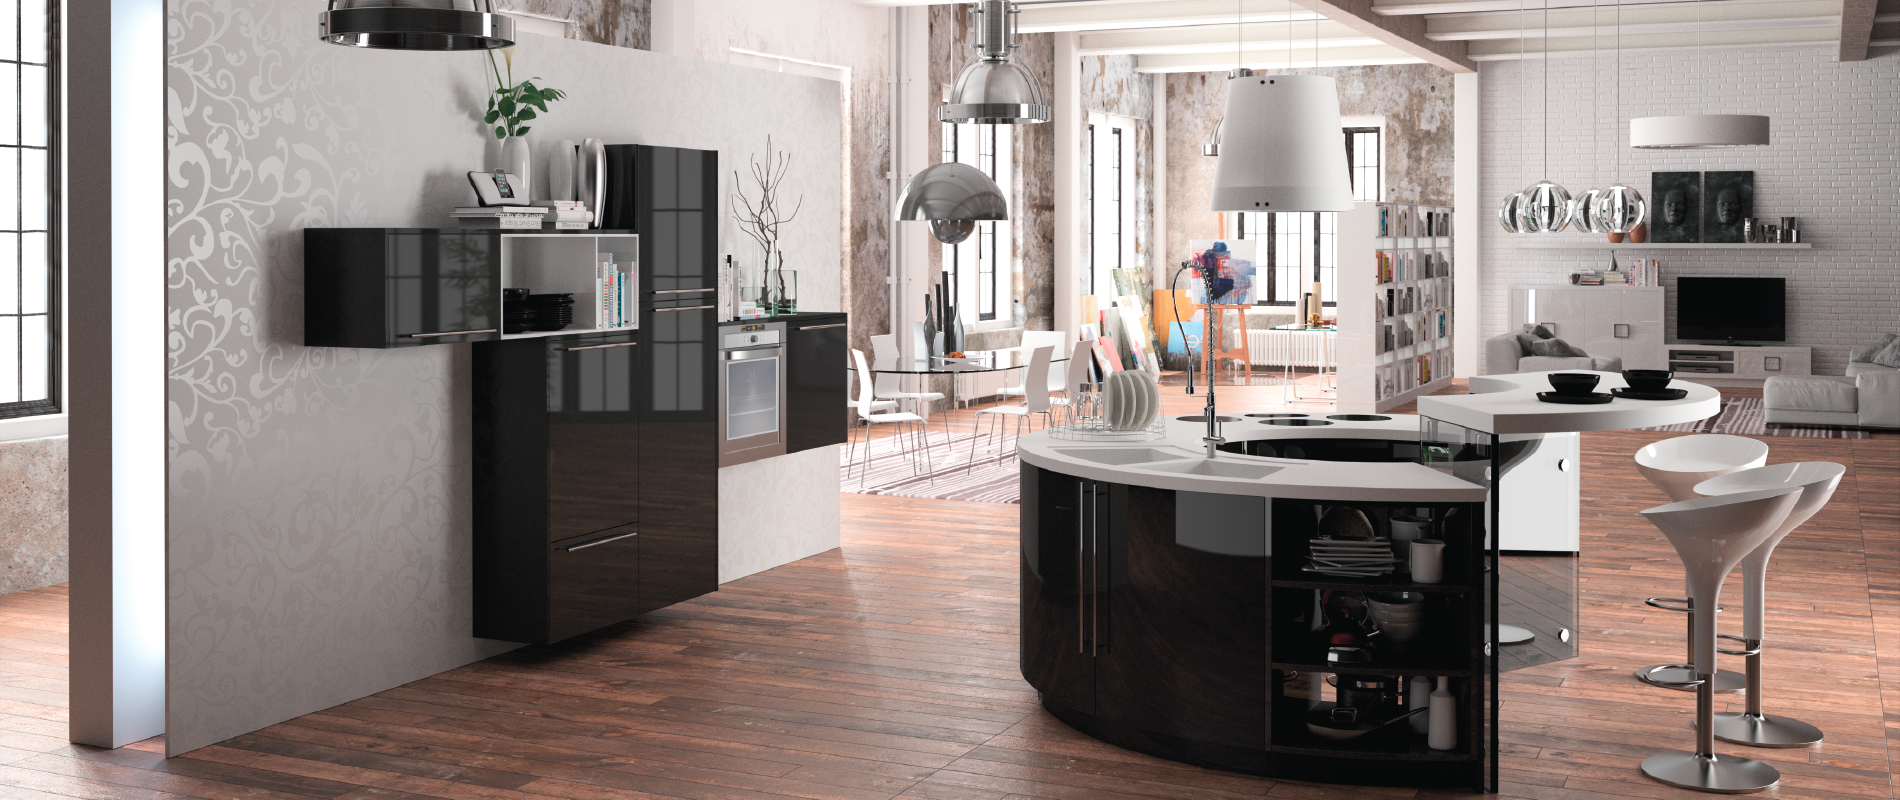 belle cuisine design ronde alicante 5 haut de gamme sur mesure. Black Bedroom Furniture Sets. Home Design Ideas